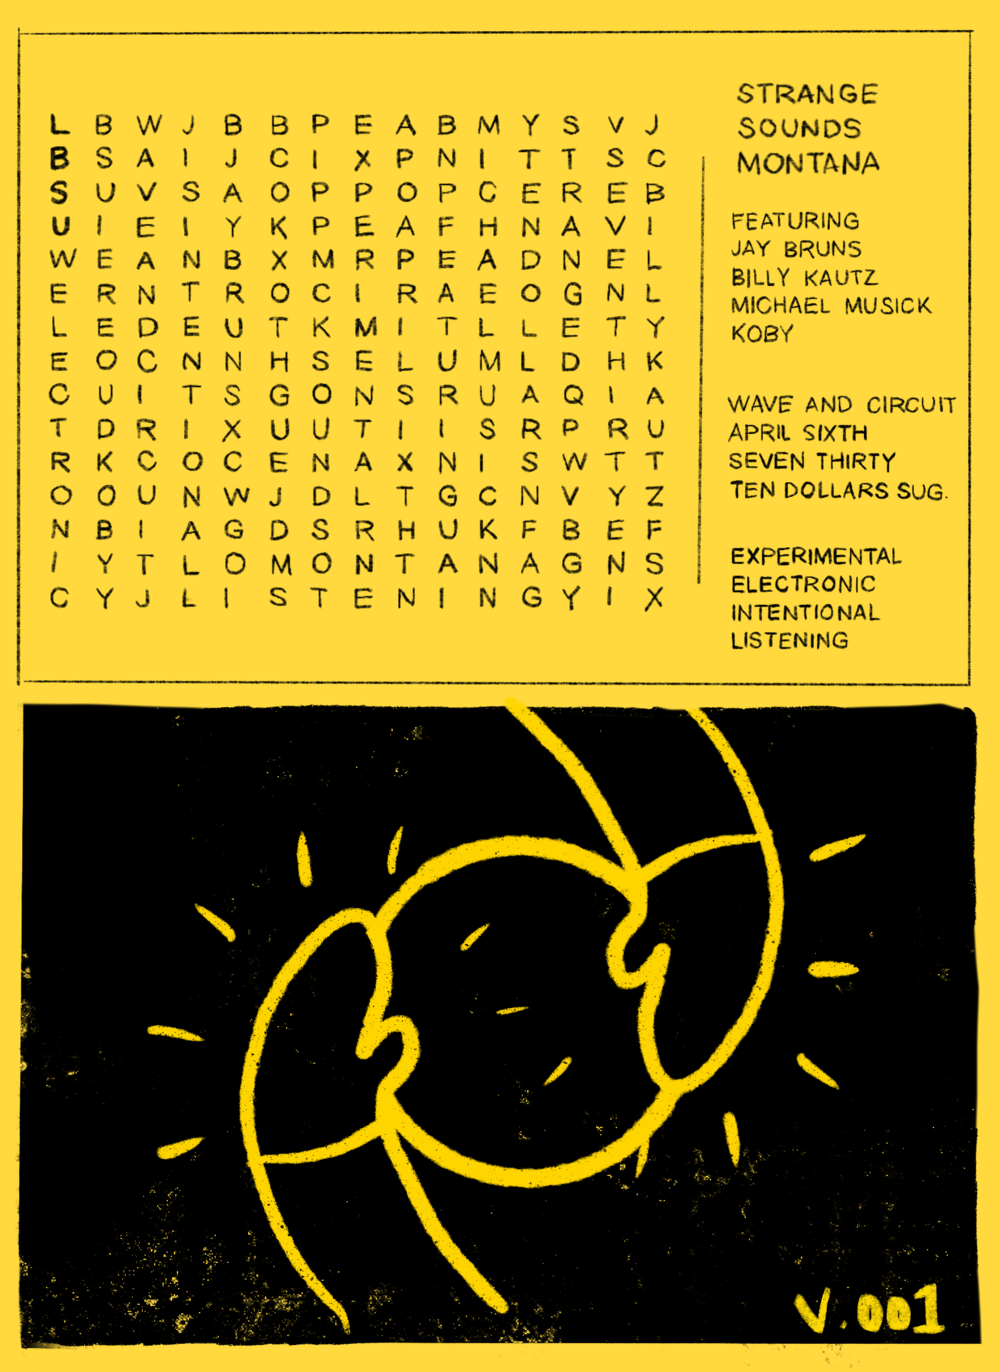 v001 poster yellow.png